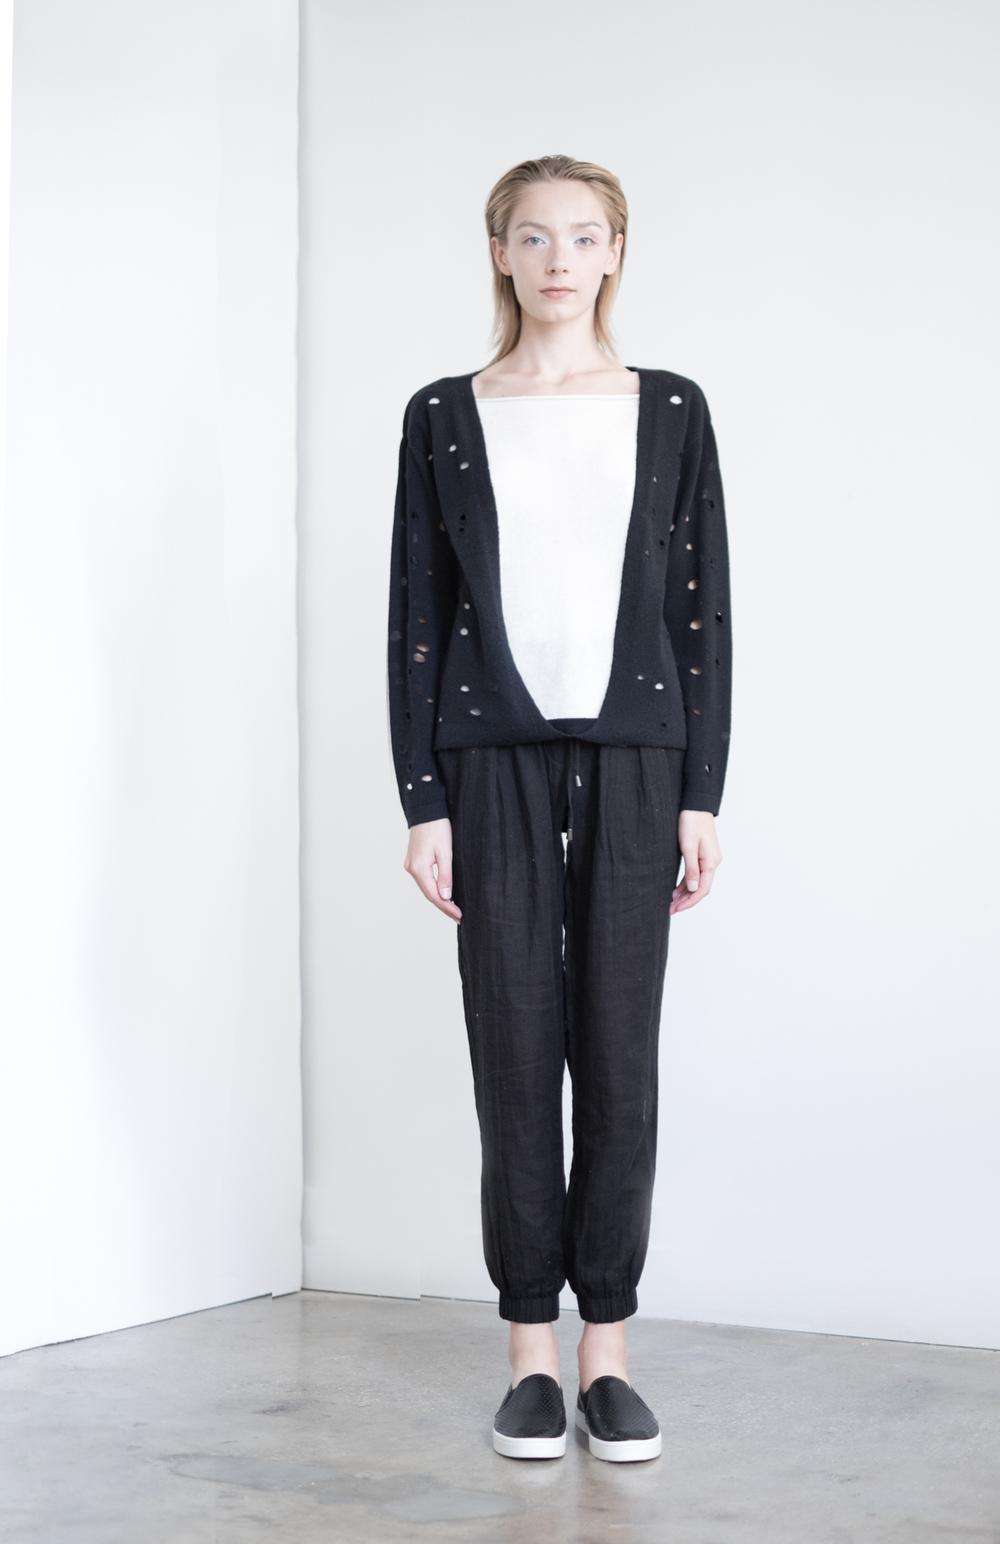 LOOK 37   TOP:   2295  / Noir   -     Engineered cut outs with overlay, in fine gauge cashmere. WS:  163   BOTTOM:   2290  / Noir  -   Jogger pants in 100% Cotton woven dbl. layer gauze. WS:  88